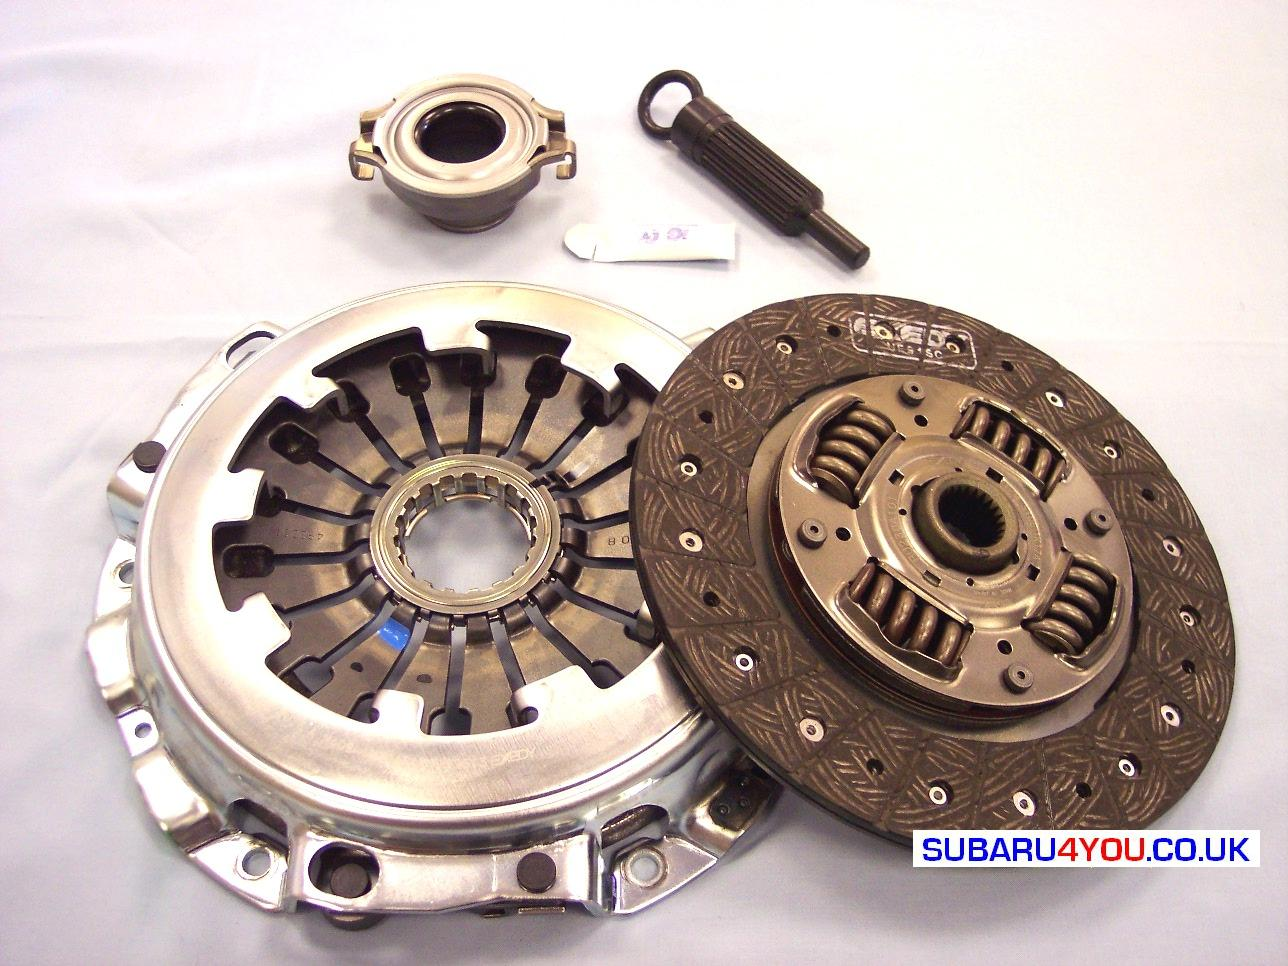 Exedy Stage 1 Subaru Clutch kits